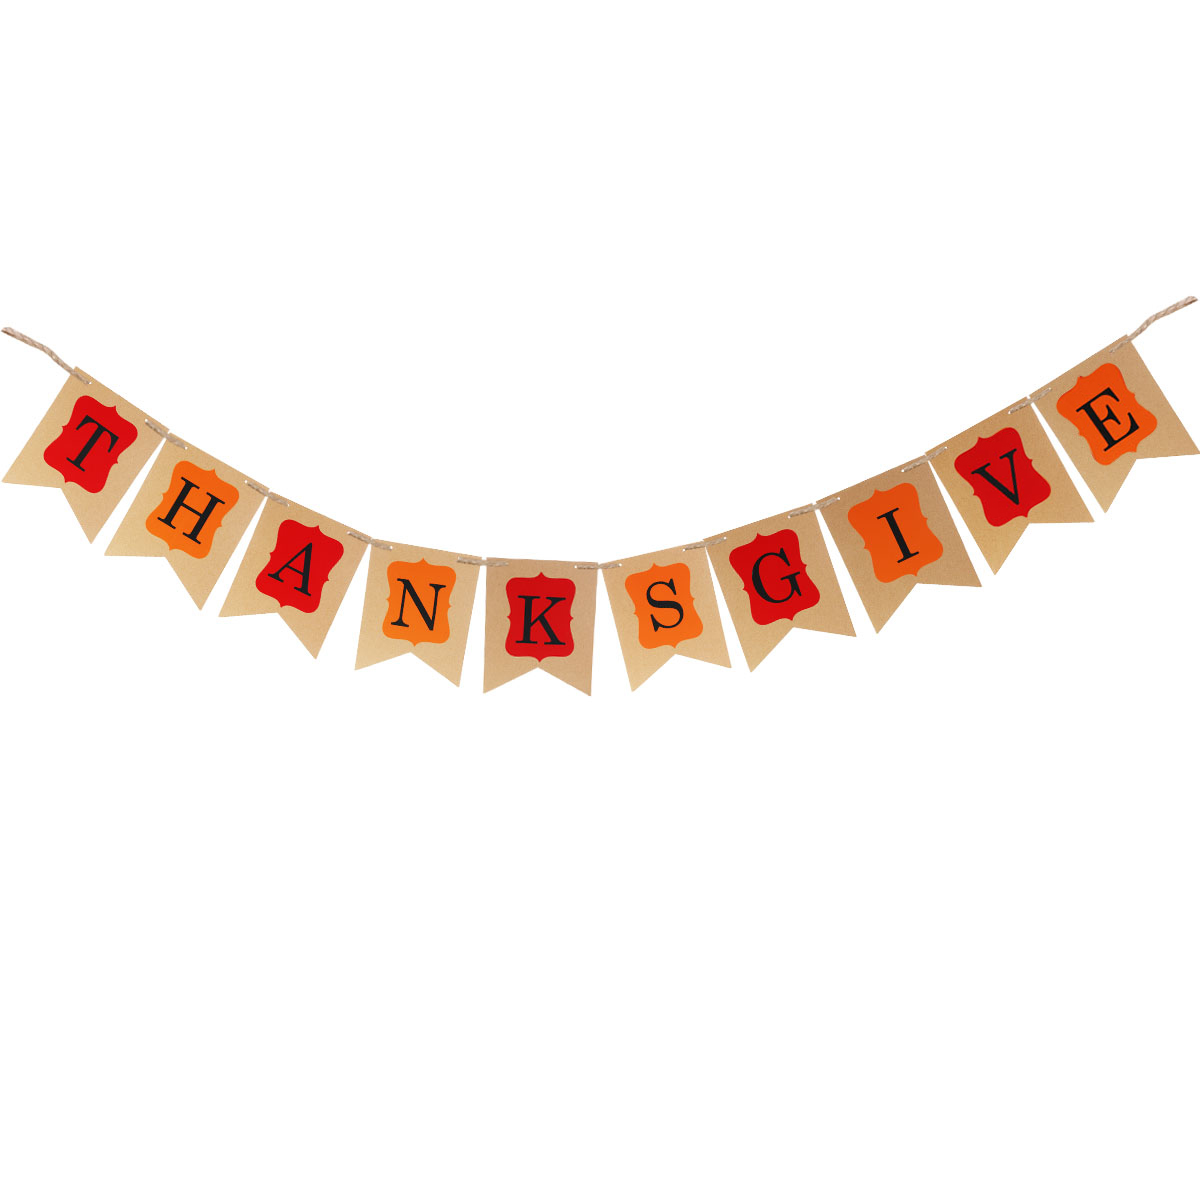 Compare Prices on Thanksgiving Banner- Online Shopping/Buy Low ...